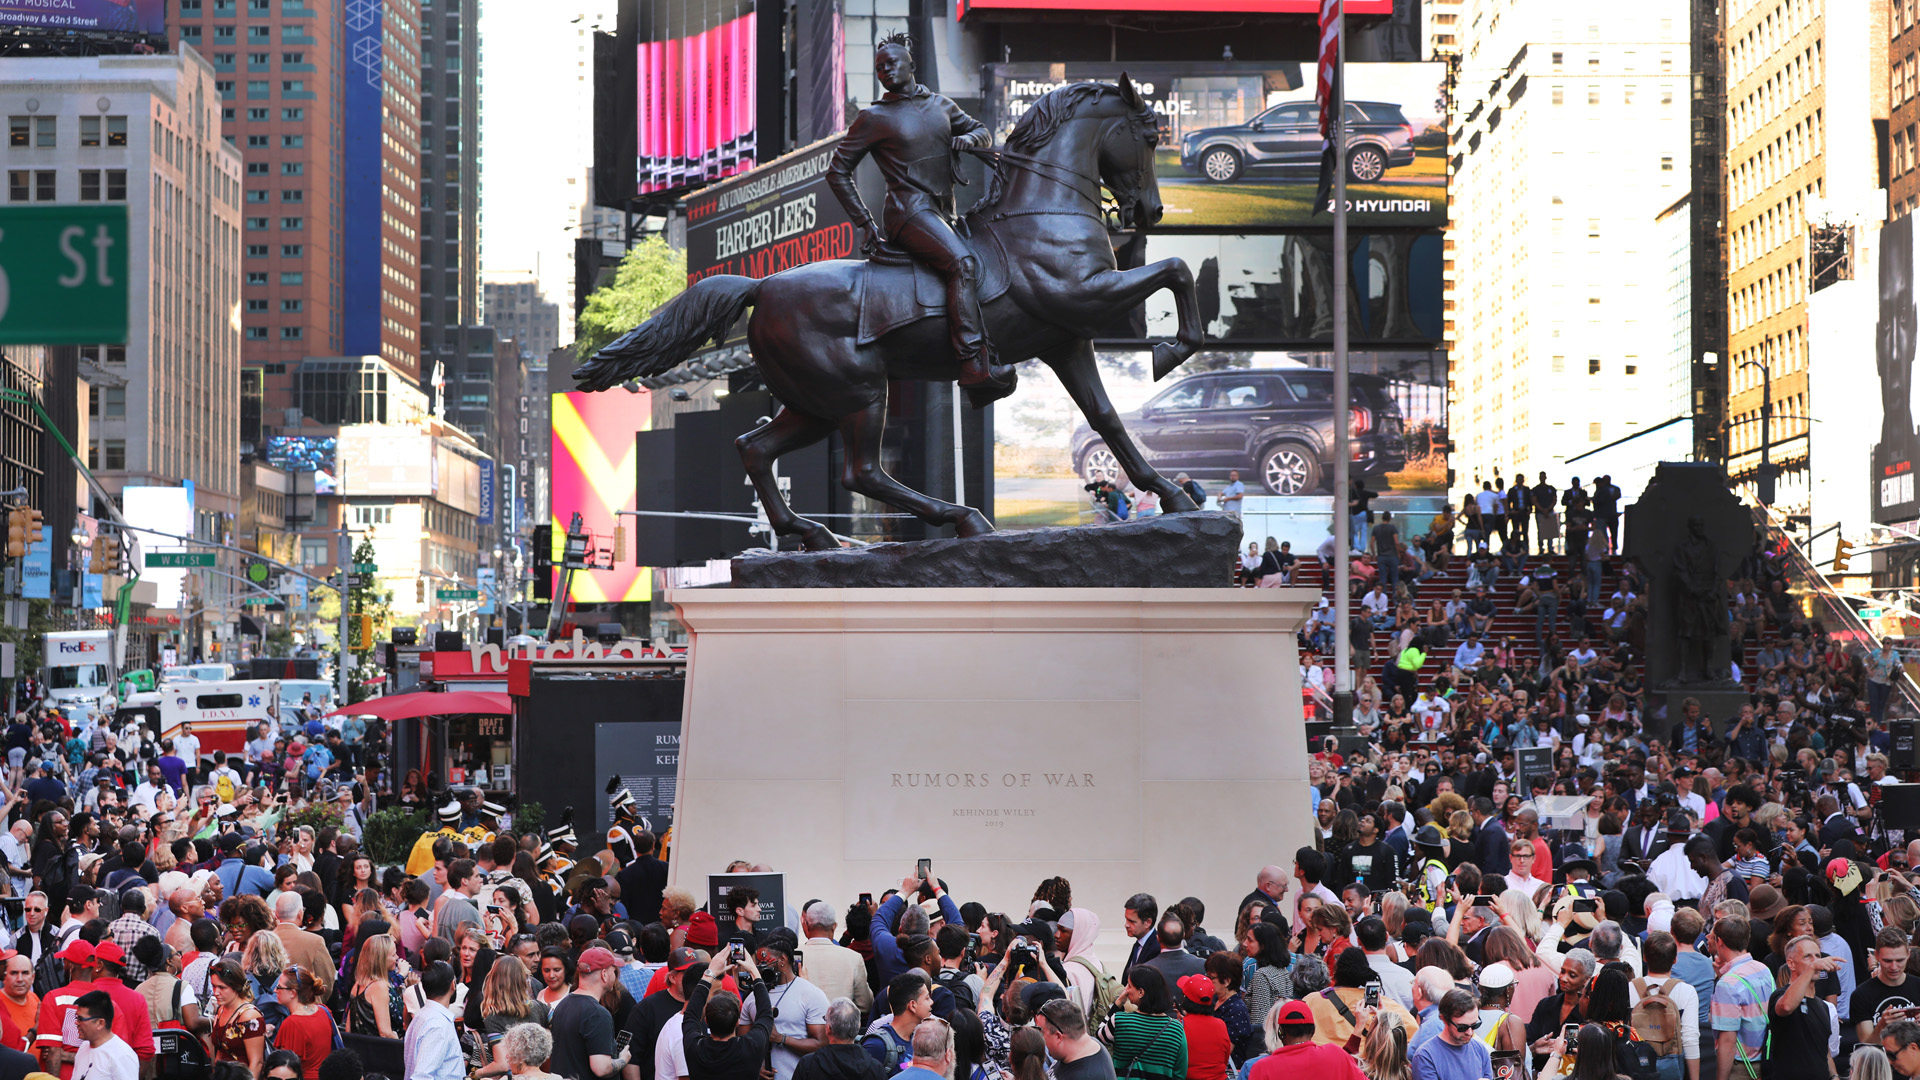 """The sculpture """"Rumors of War"""" is unveiled in Times Square on September 27, 2019 in New York City. (Credit: Spencer Platt/Getty Images)"""